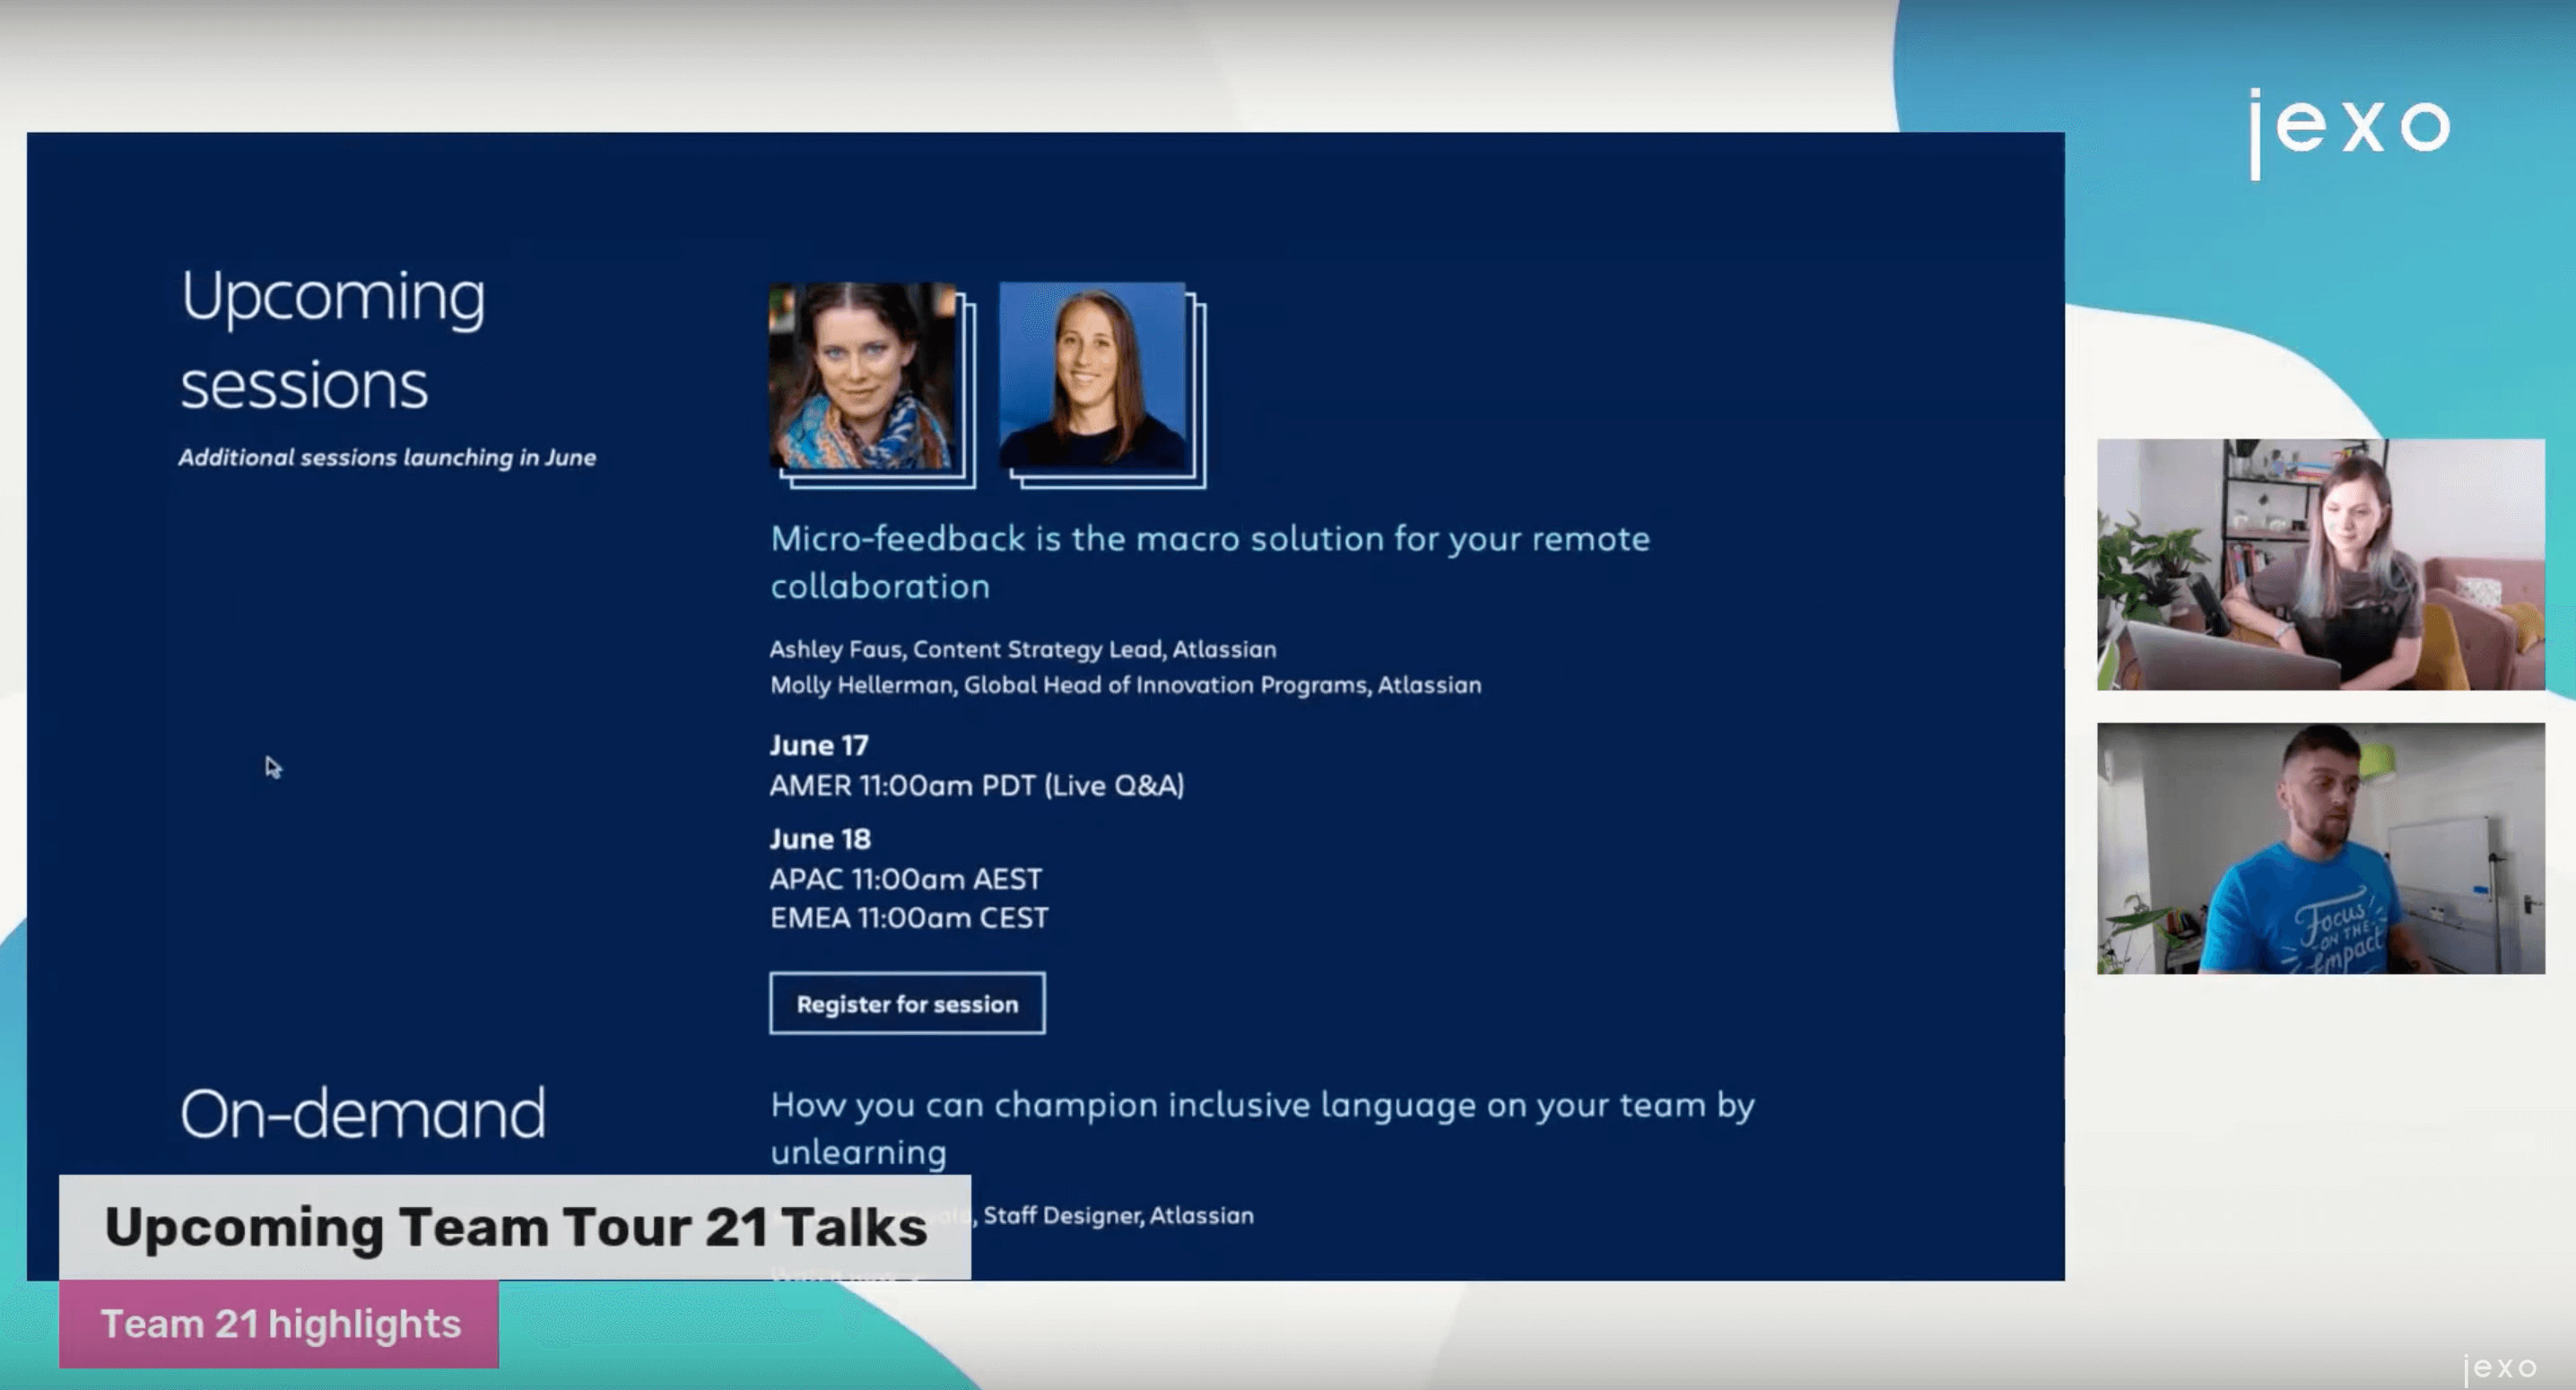 Upcoming talk on Atlassian Team Tour 21 event by Ashley Faus and Molly Hellerman from Atlassian.